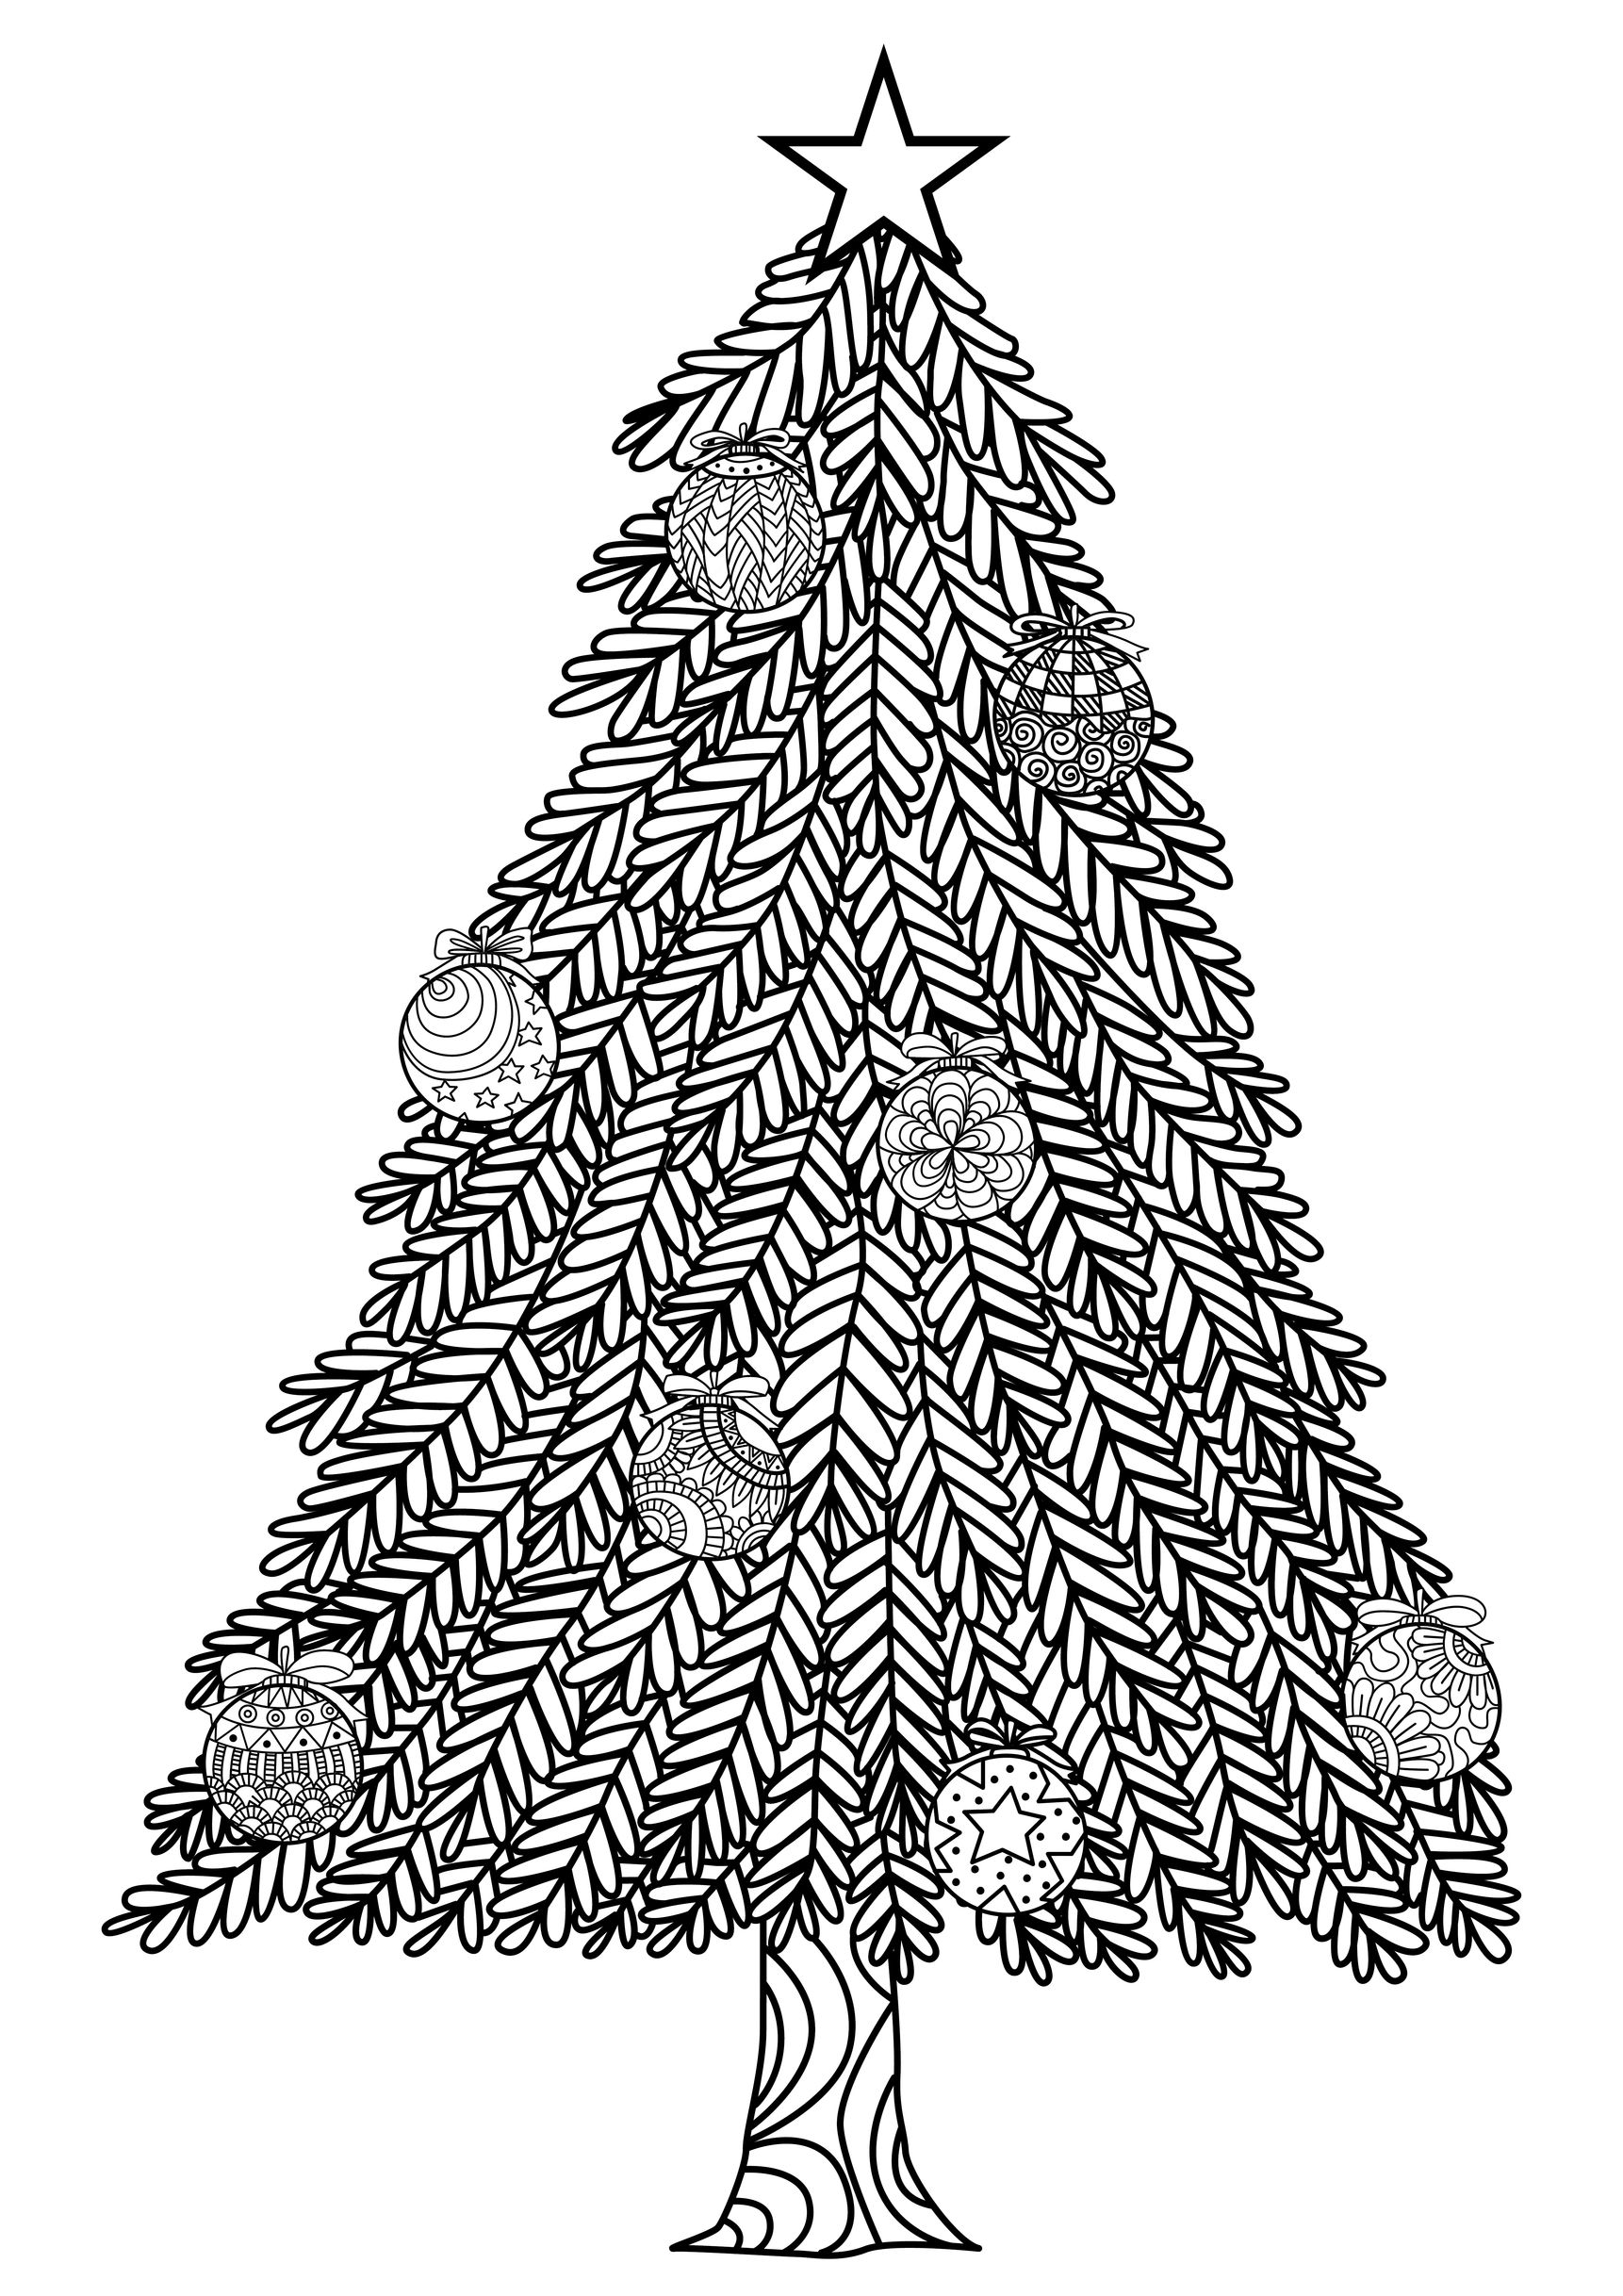 Christmas tree Zentangle style with Christmas balls and a big star in the top